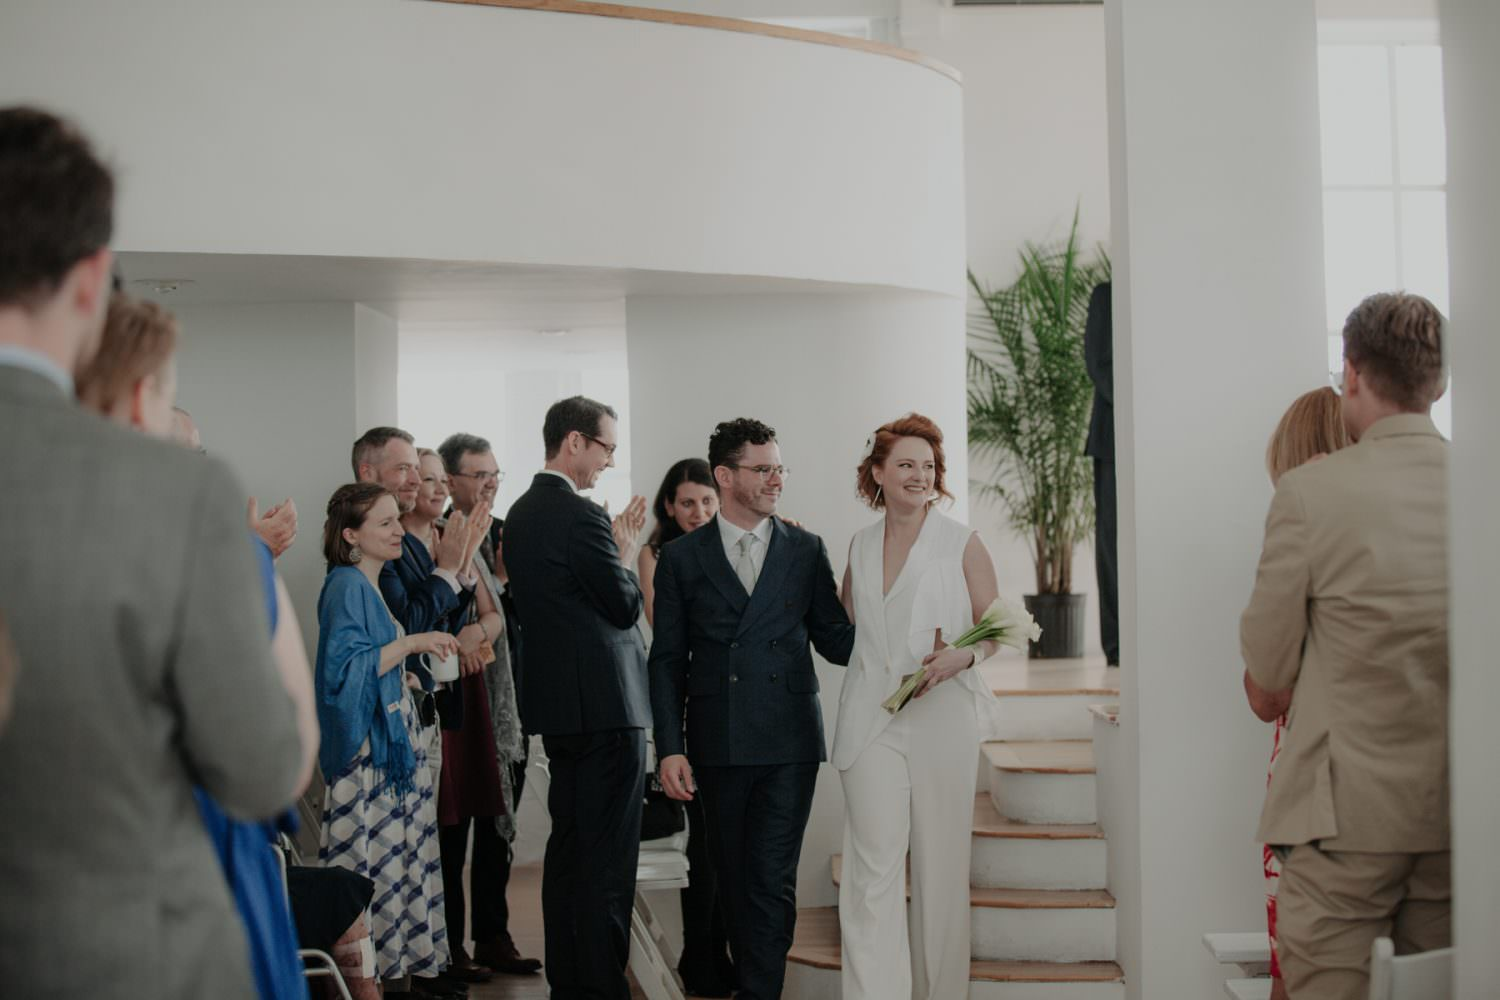 Bride and Groom make an exit after their wedding ceremony